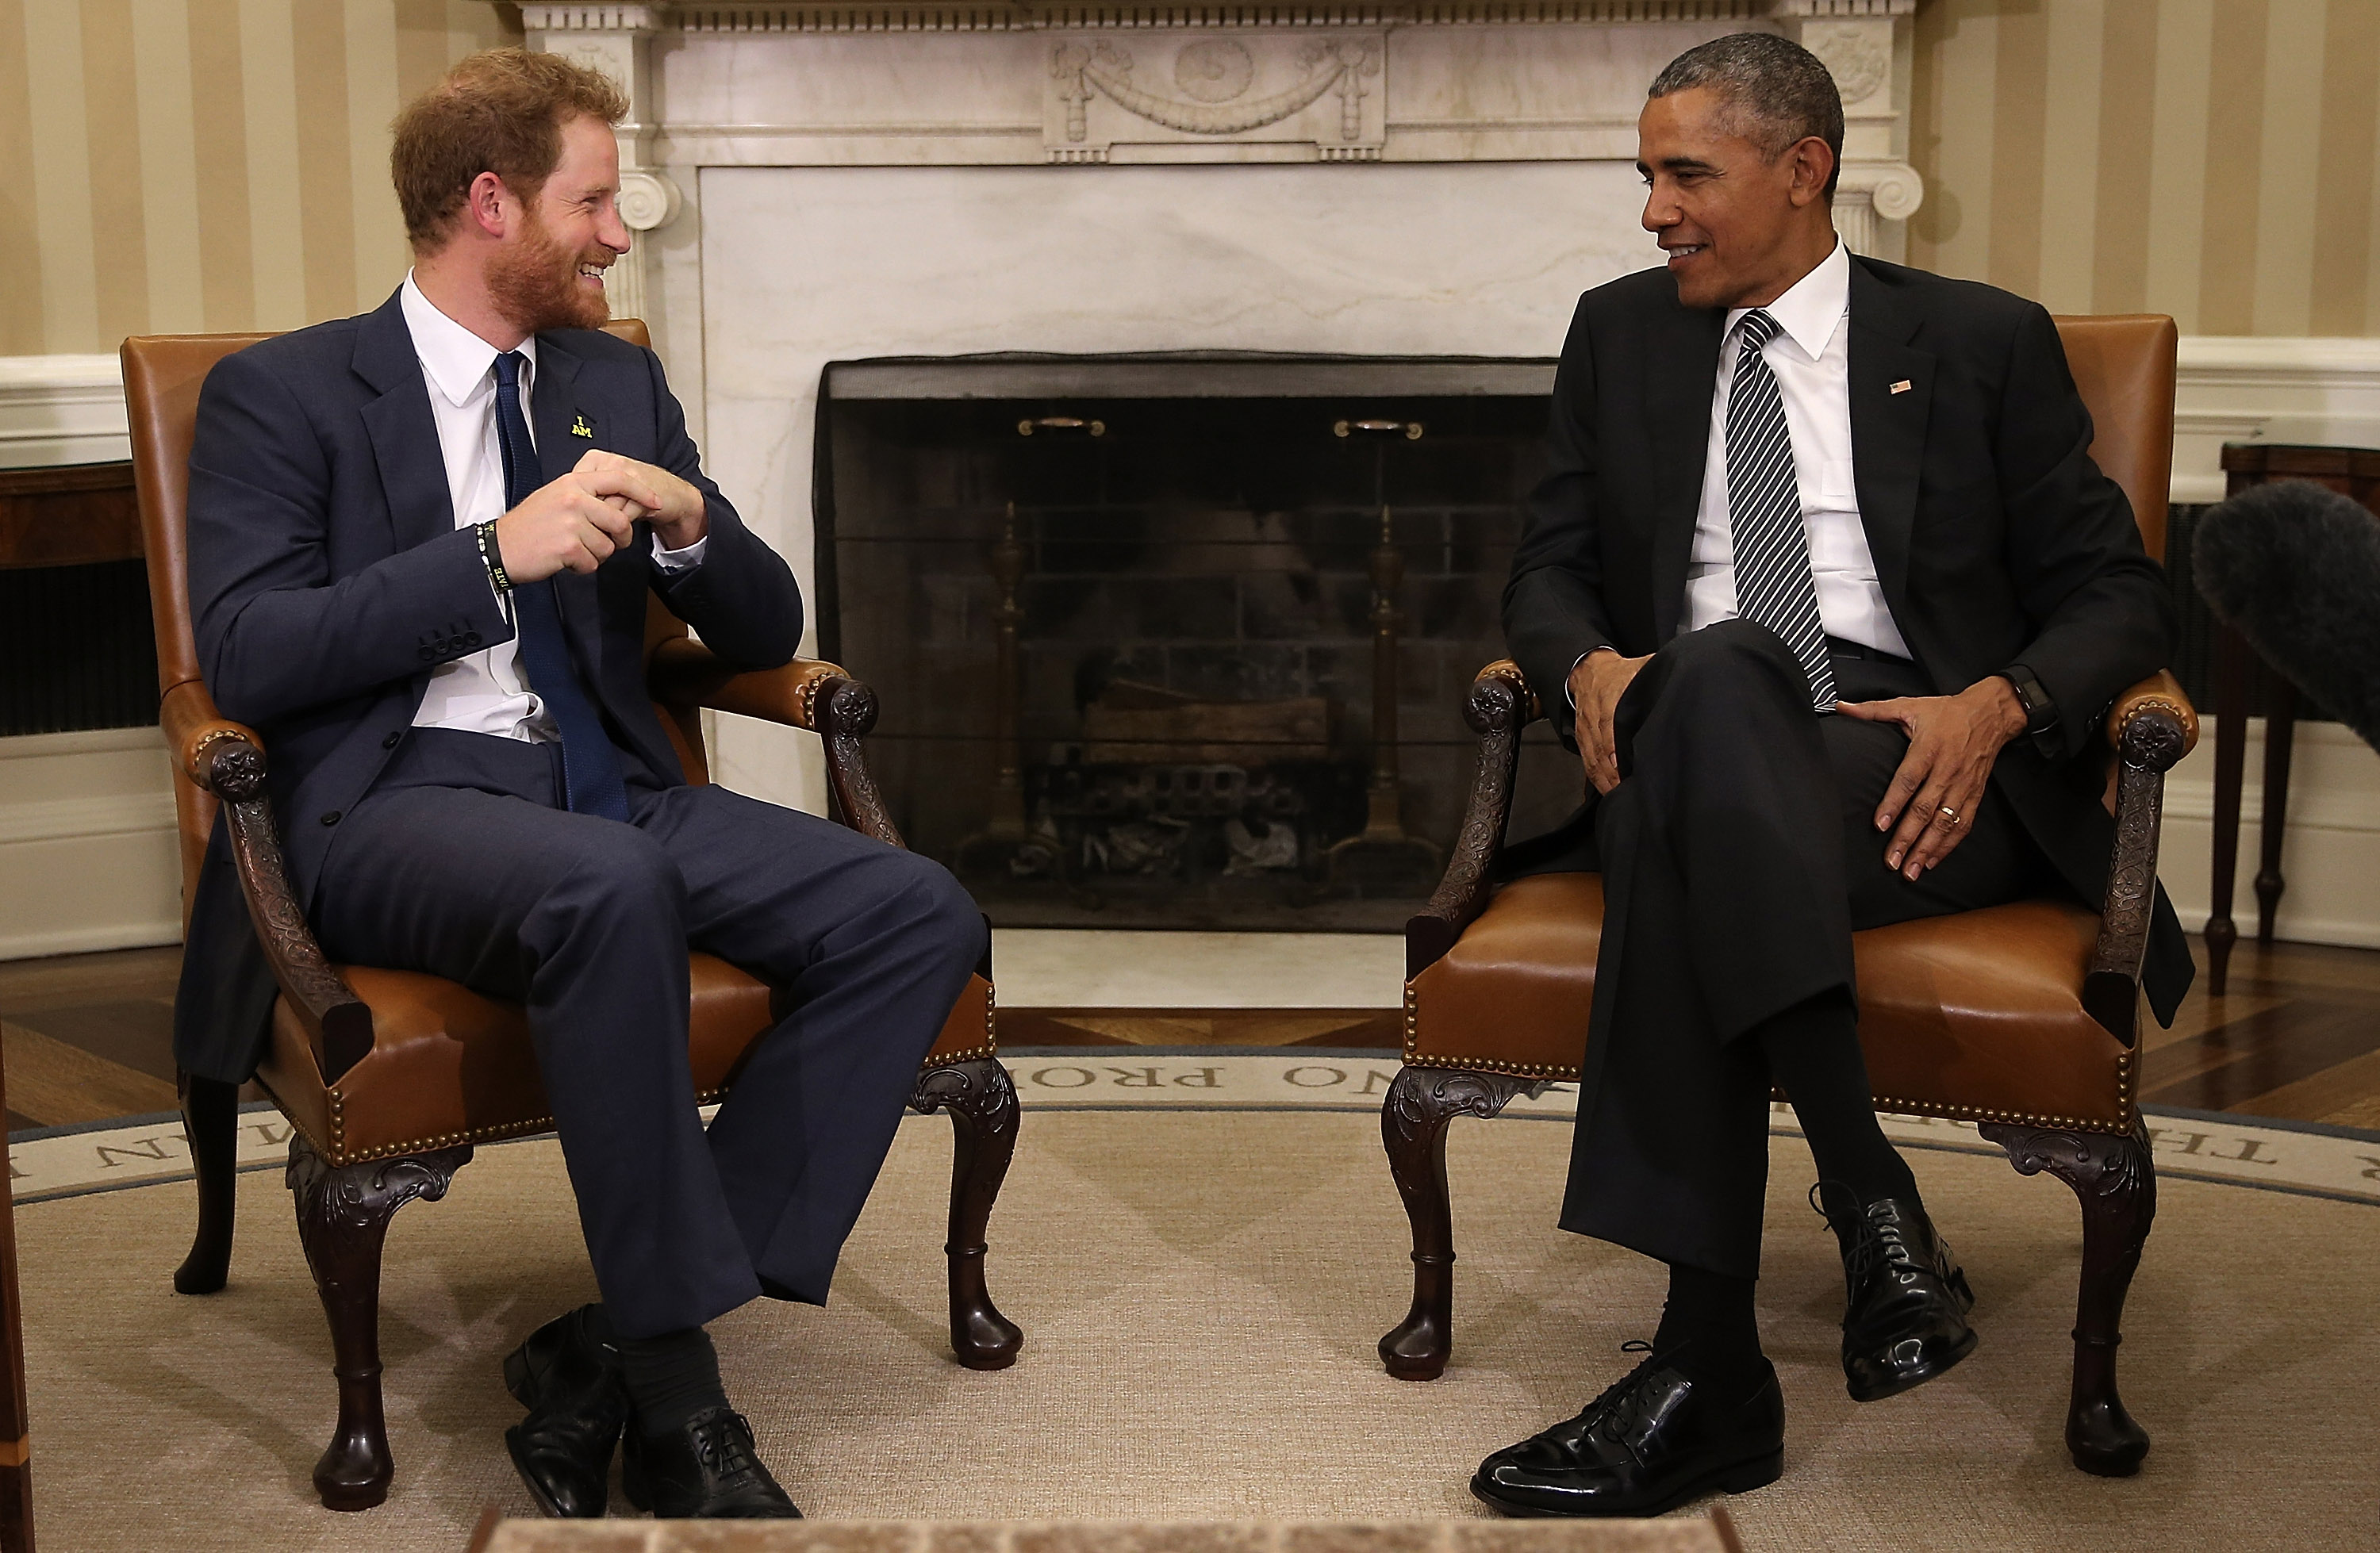 President Barack Obama meets with Prince Harry in the Oval Office of the White House in Washington, D.C., 28 Oct. 2015.